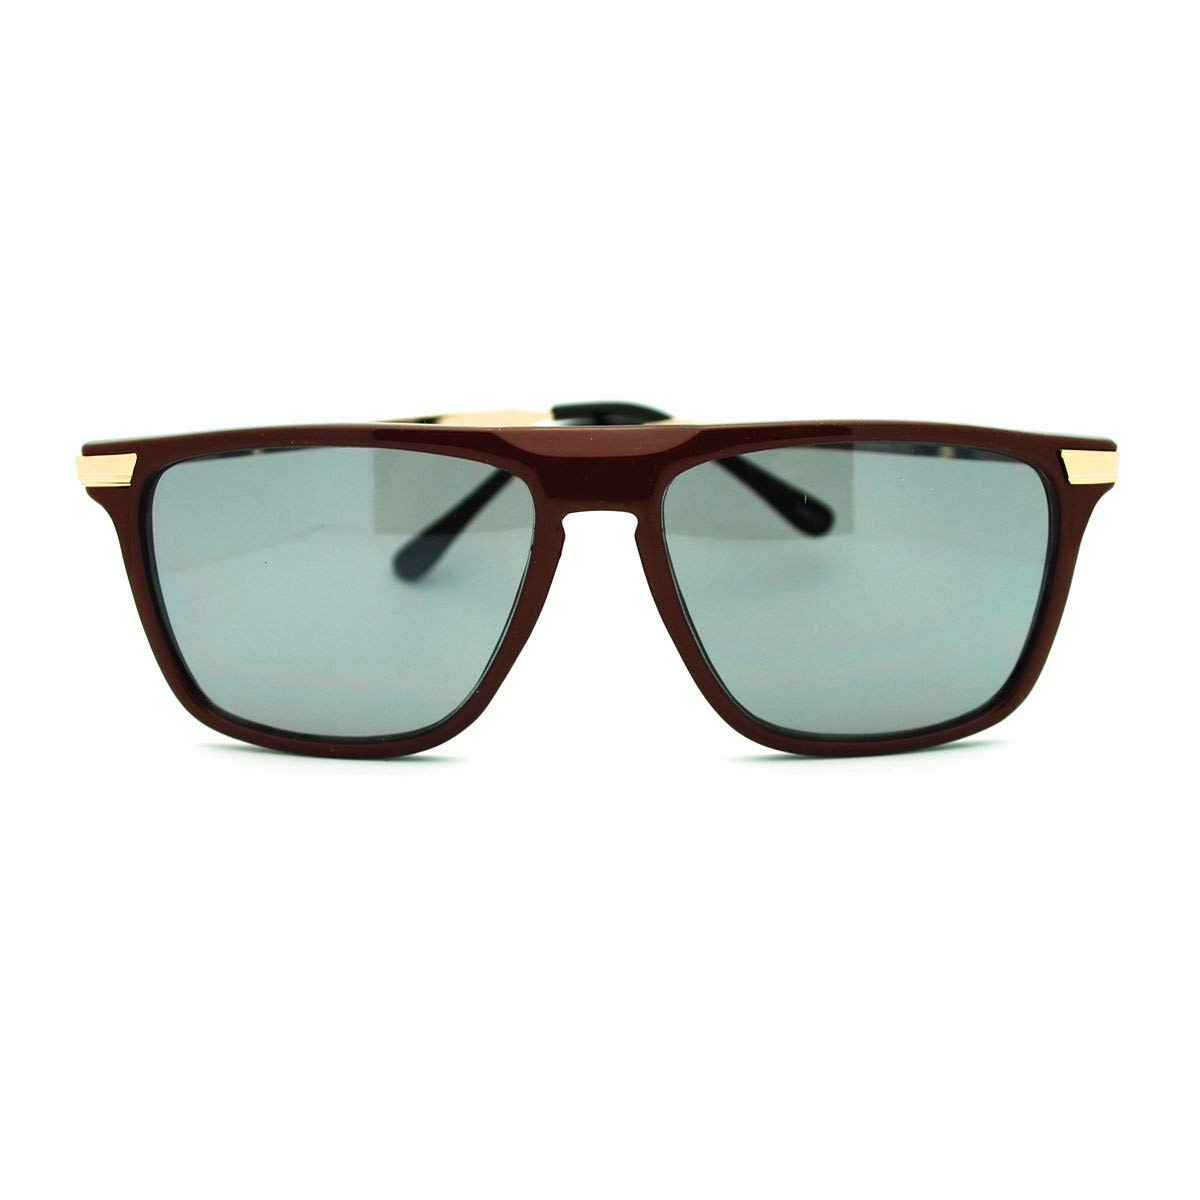 09299ec1aa9b7b Buy Todays Offers Vogue Square Flat Top Browne Sunglasses Men ...